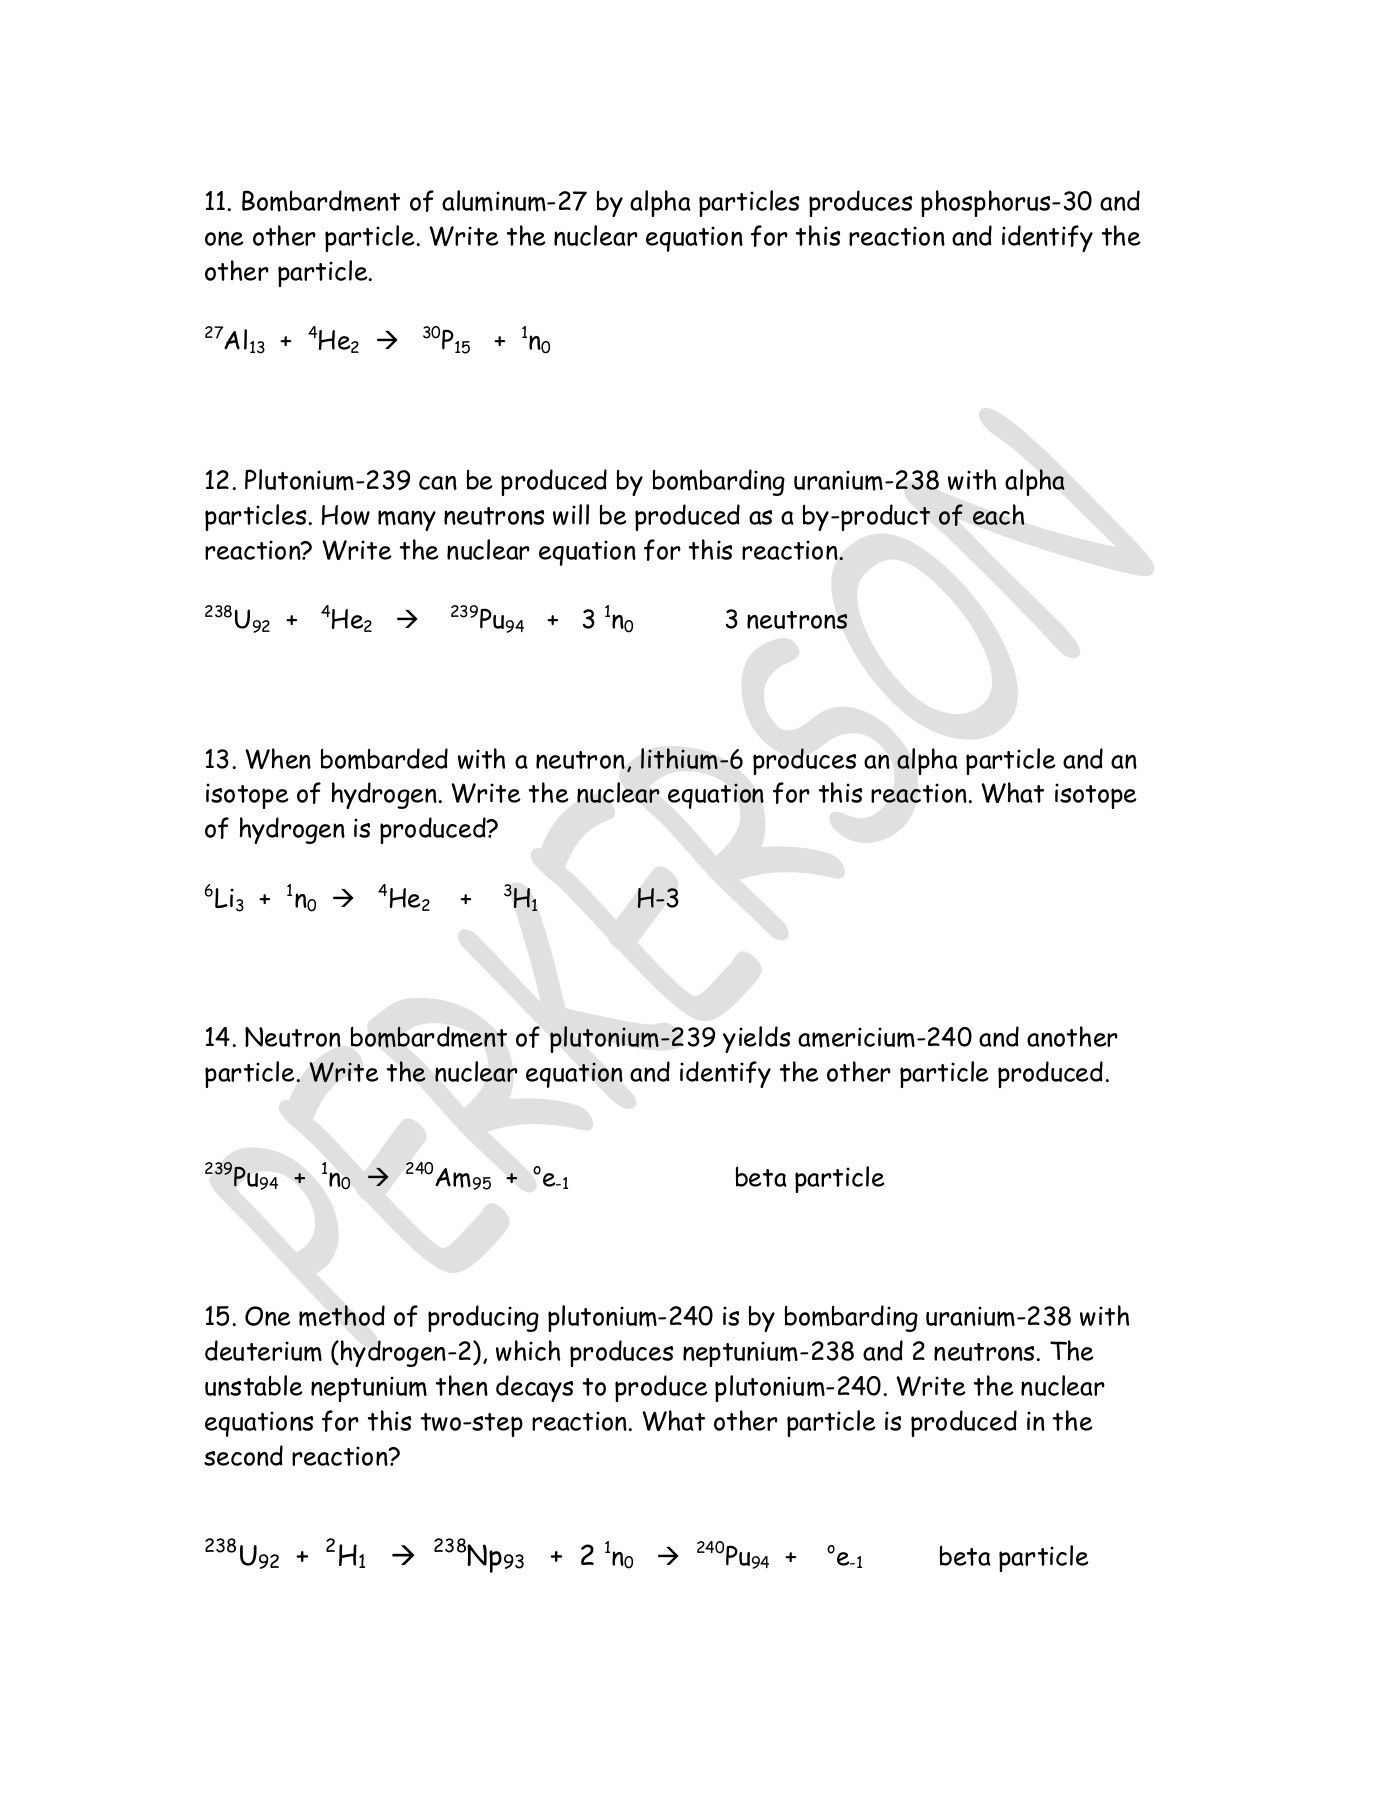 Nuclear Equations Worksheet Answers Nuclear Equations Worksheet Answers Typepad Pages 1 3